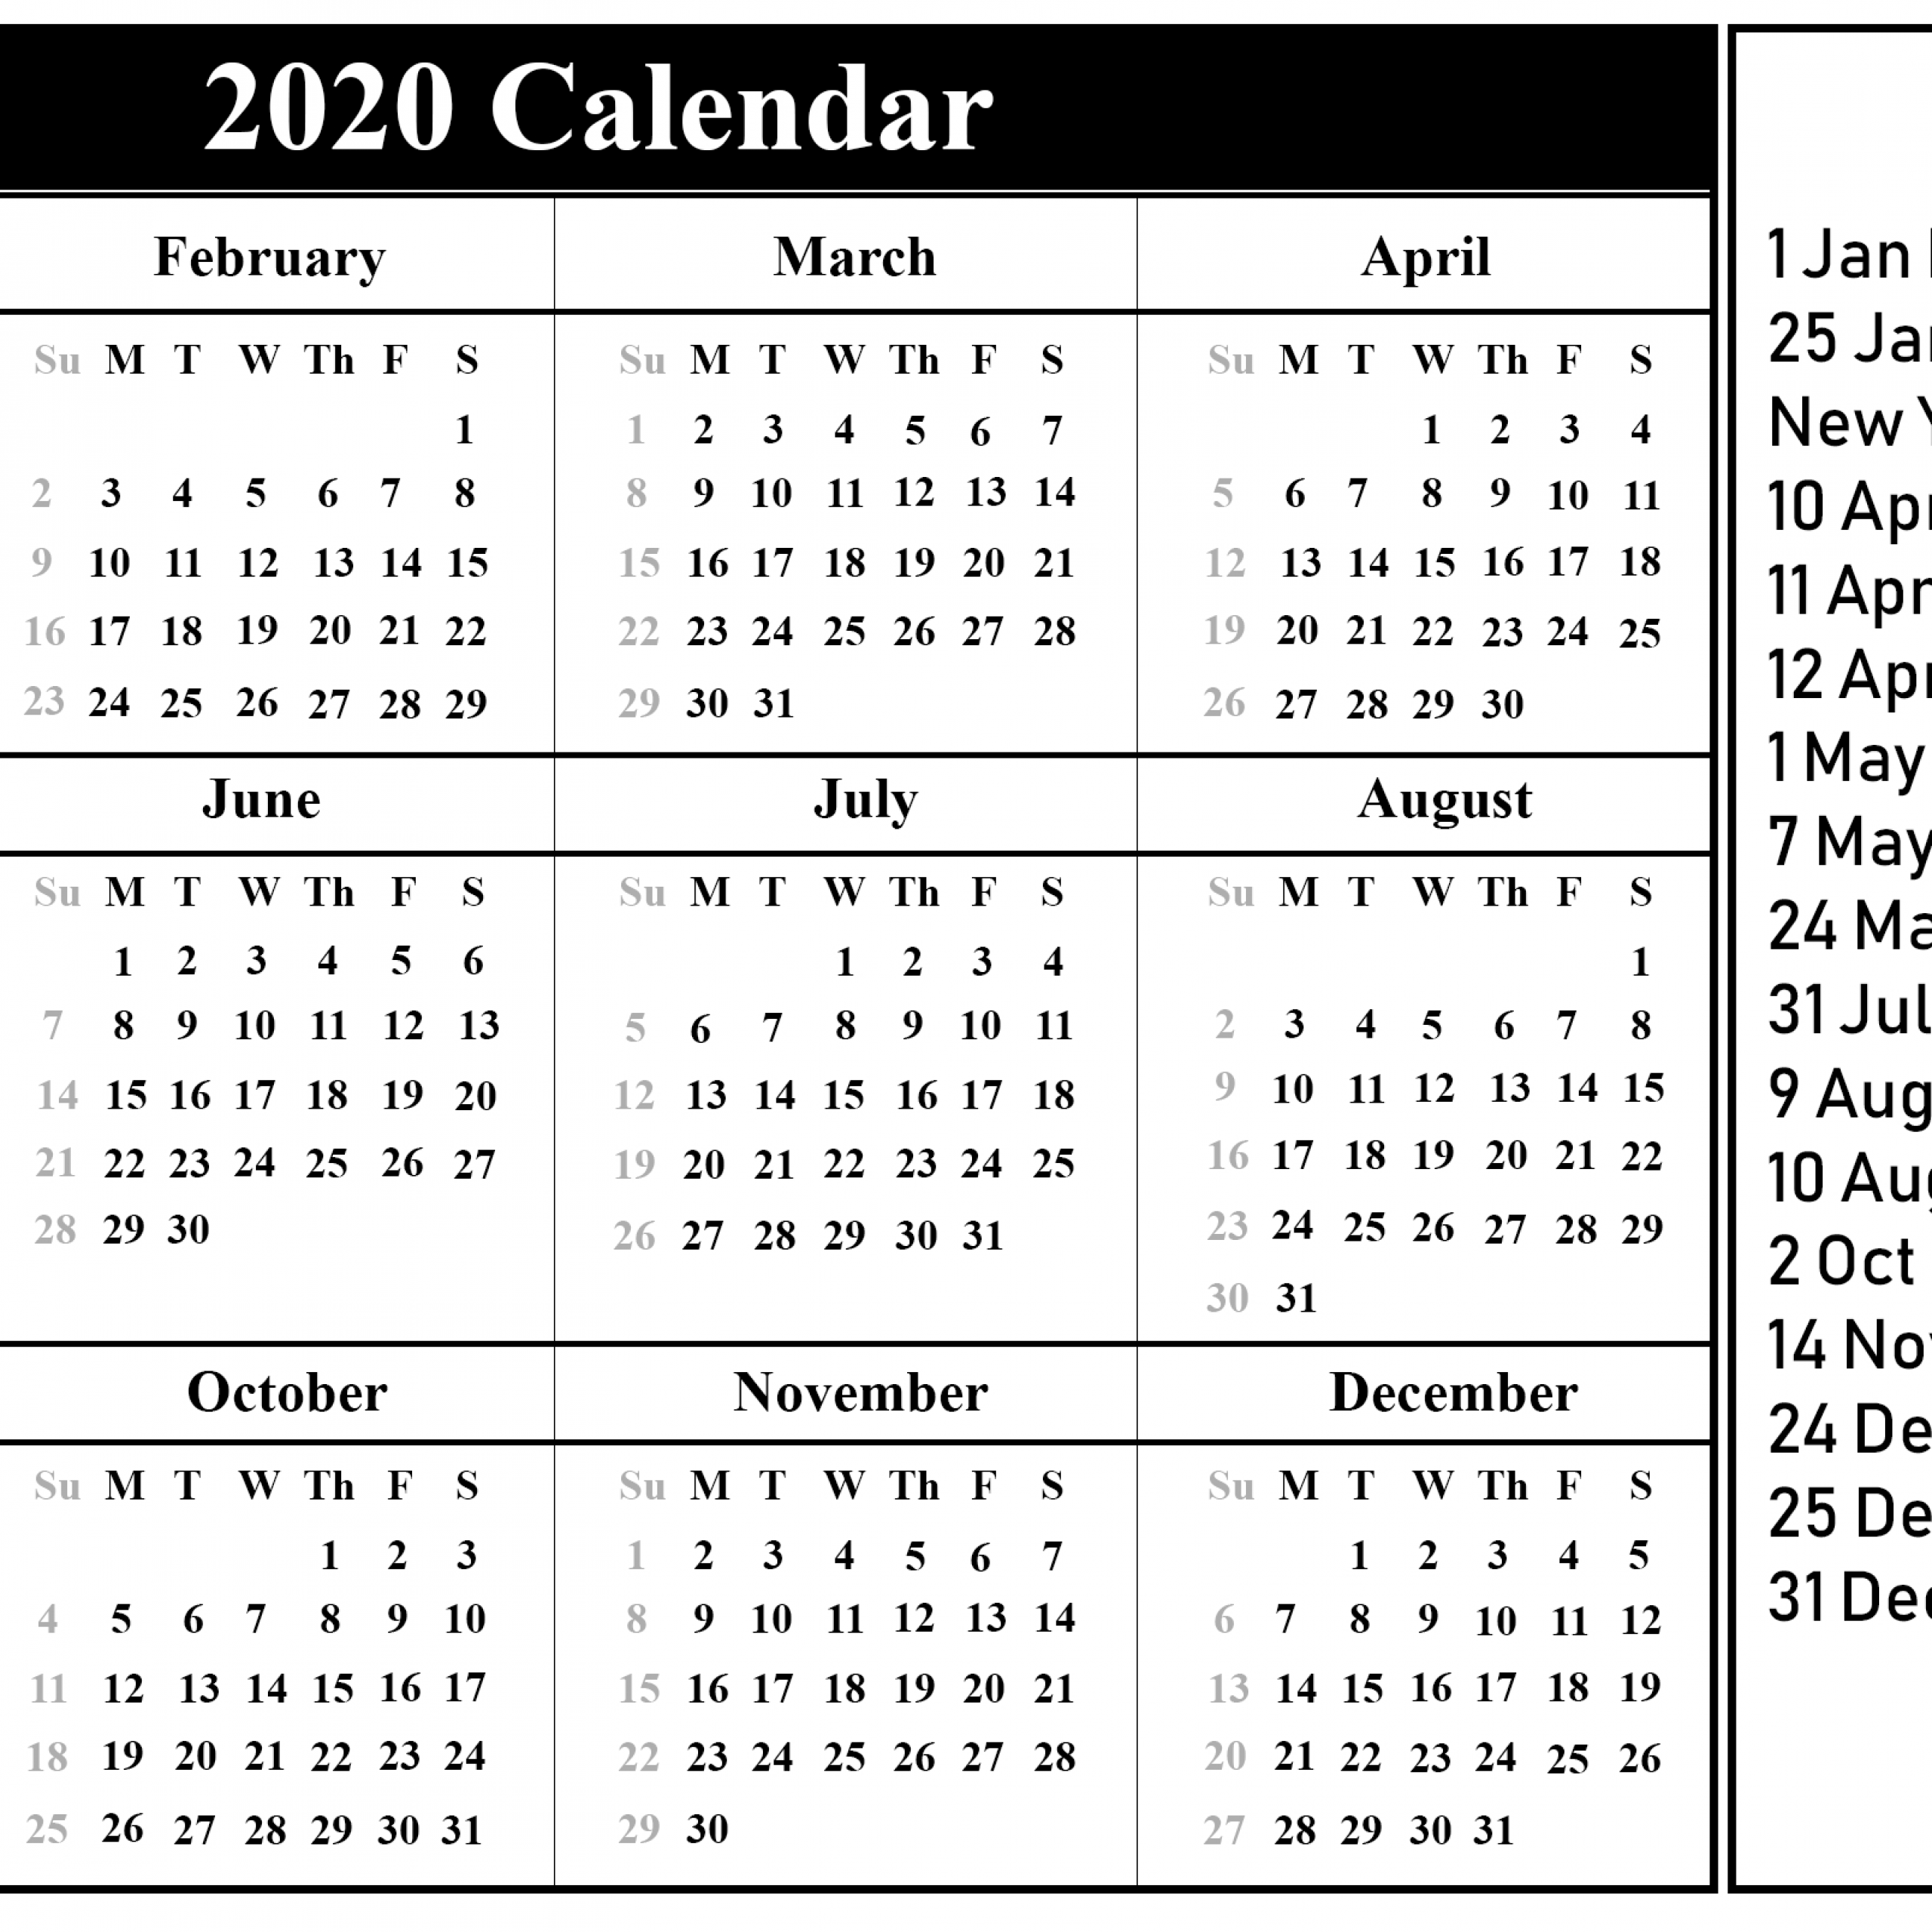 Free Printable 2020 Calendar With Holidays Complete Months